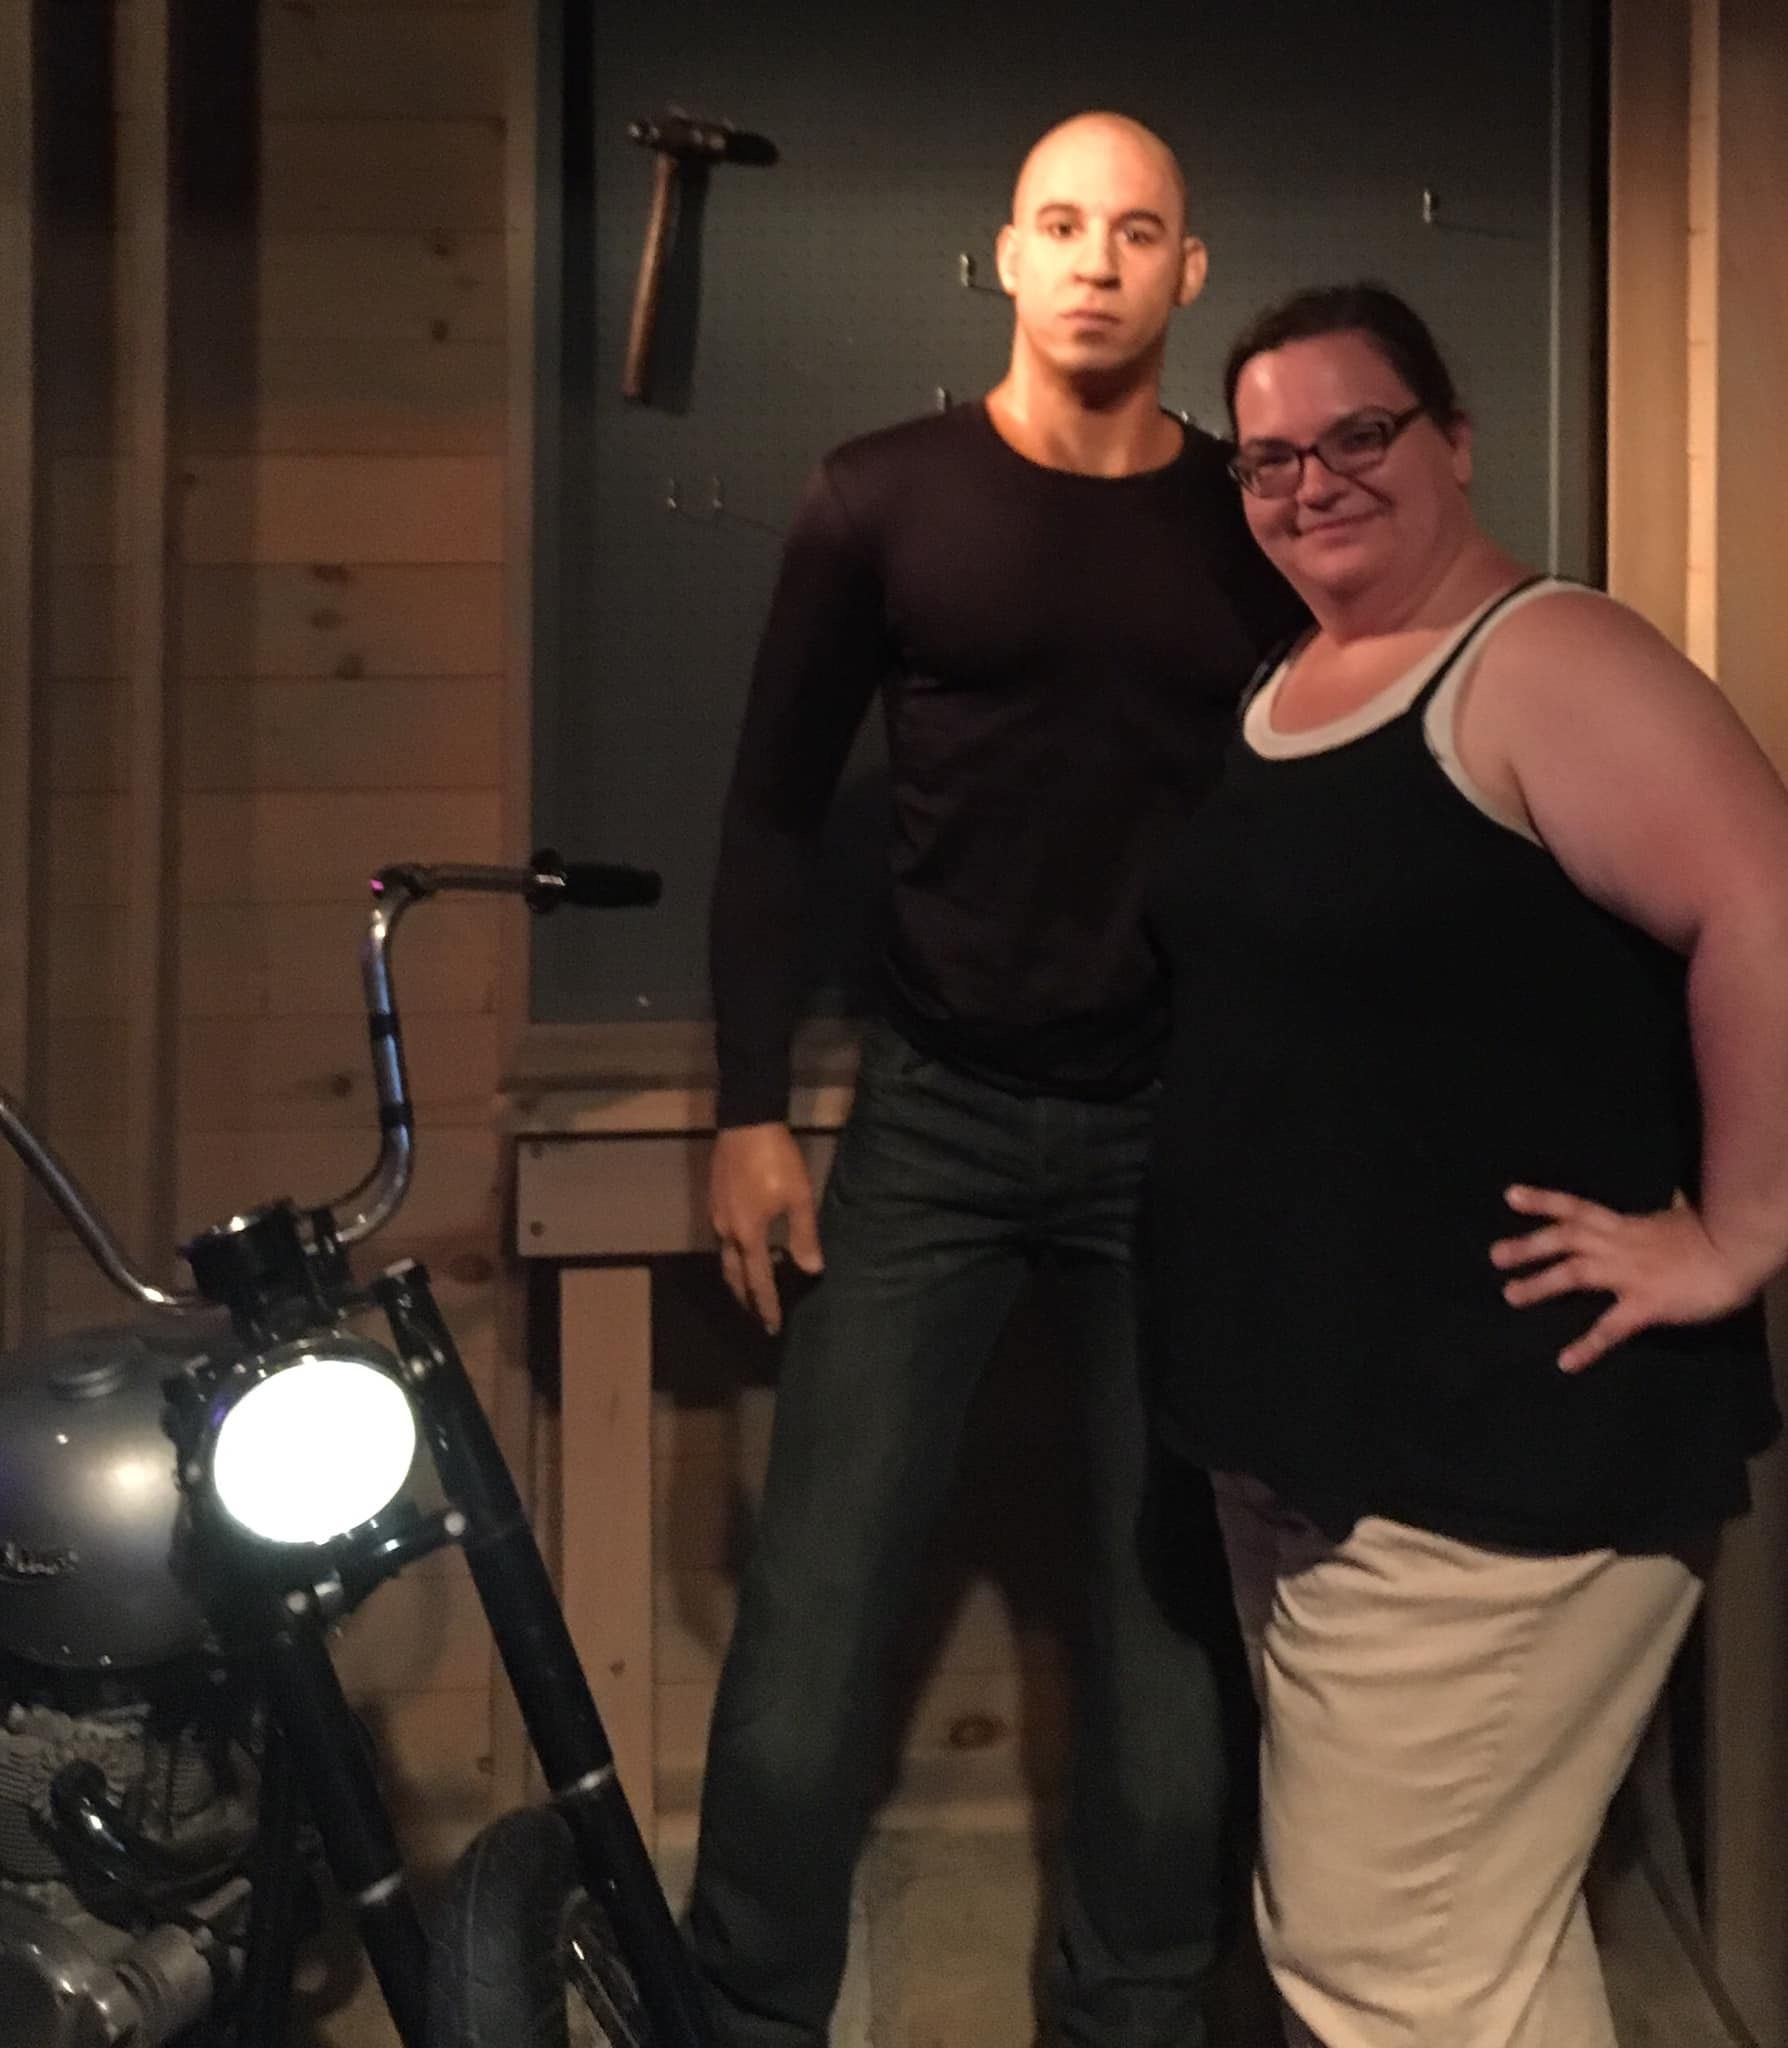 With Vin Diesel at the Hollywood Wax Museum near the Quality Inn Branson on the Strip